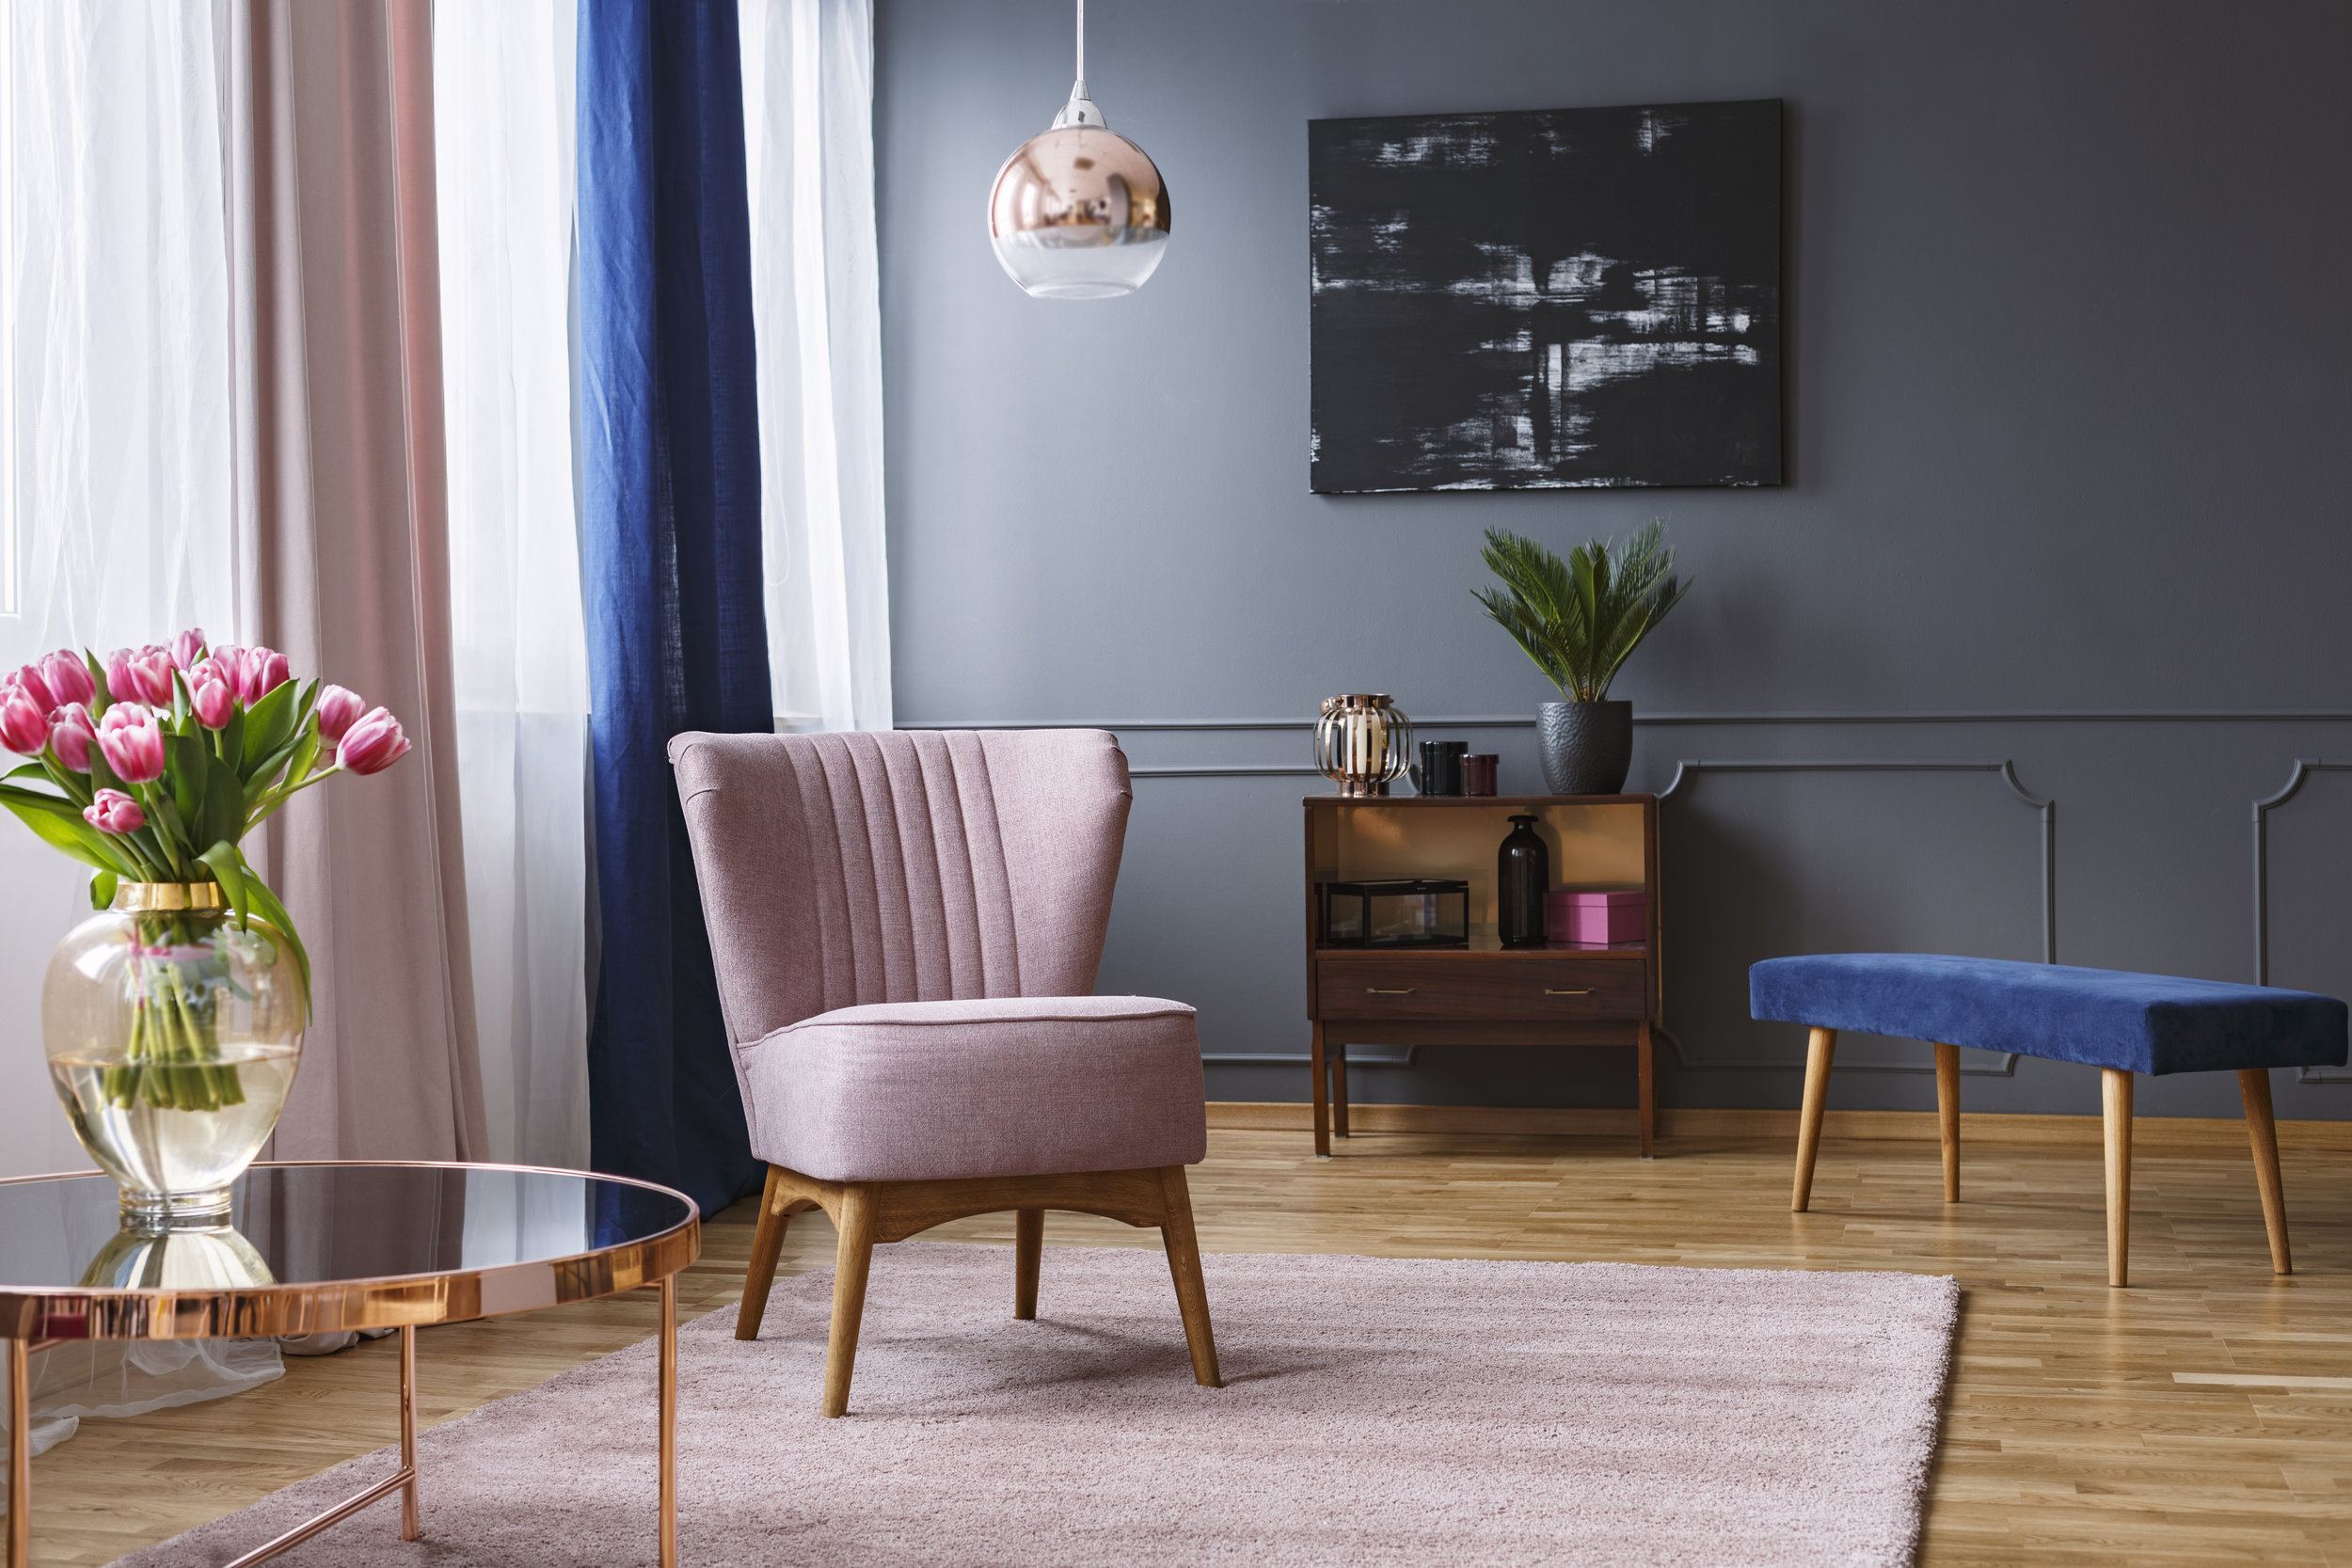 pink chair, blue interior